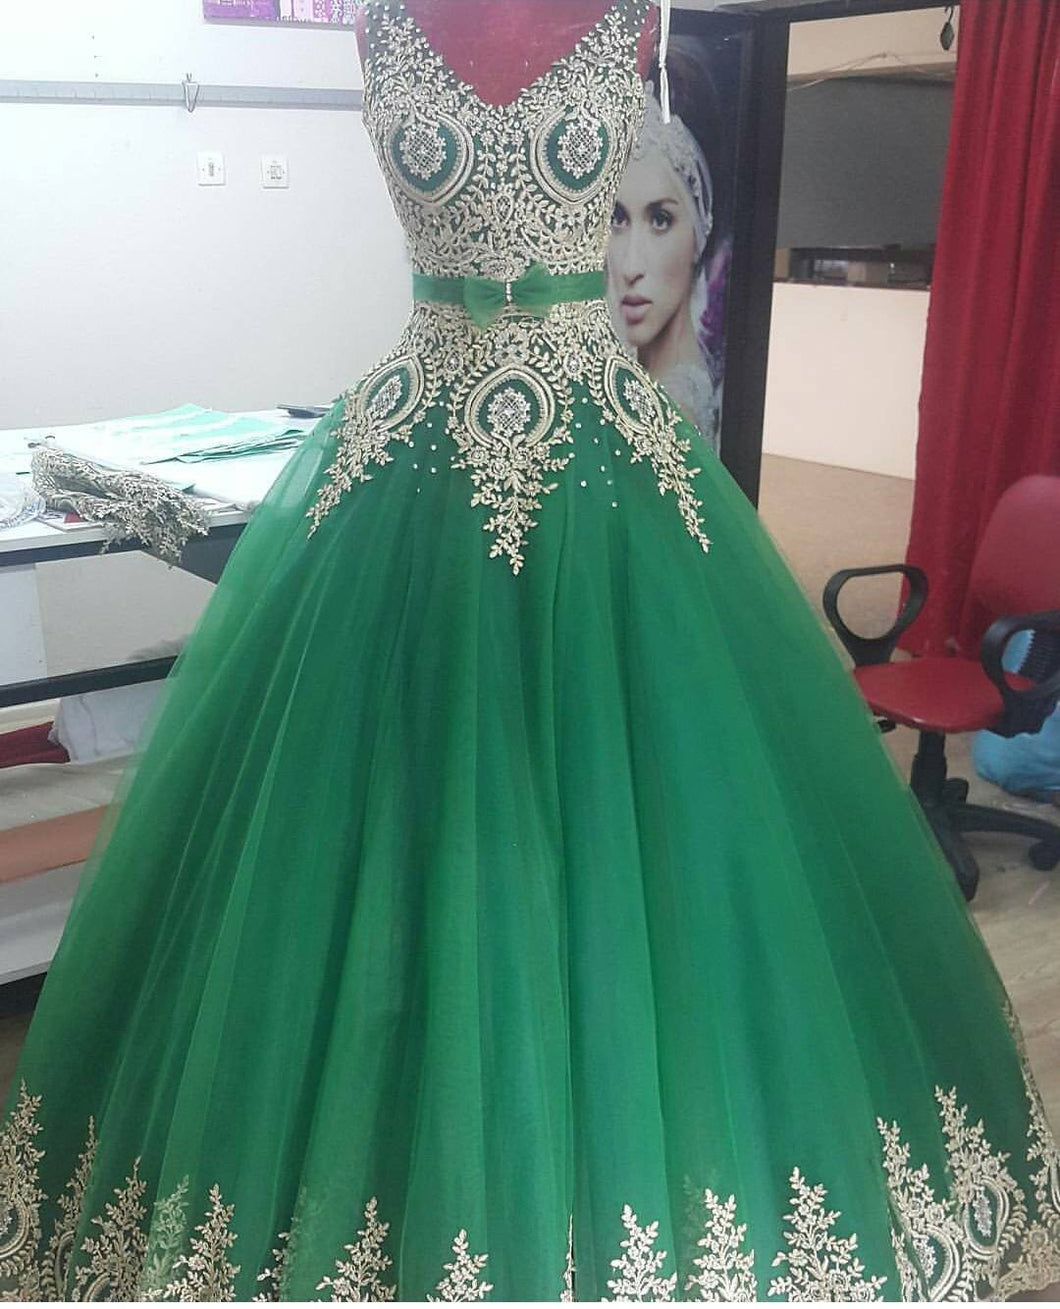 Elegant Gold Lace Appliques V Neck Green Ball Gowns Quinceanera Dresses 2017